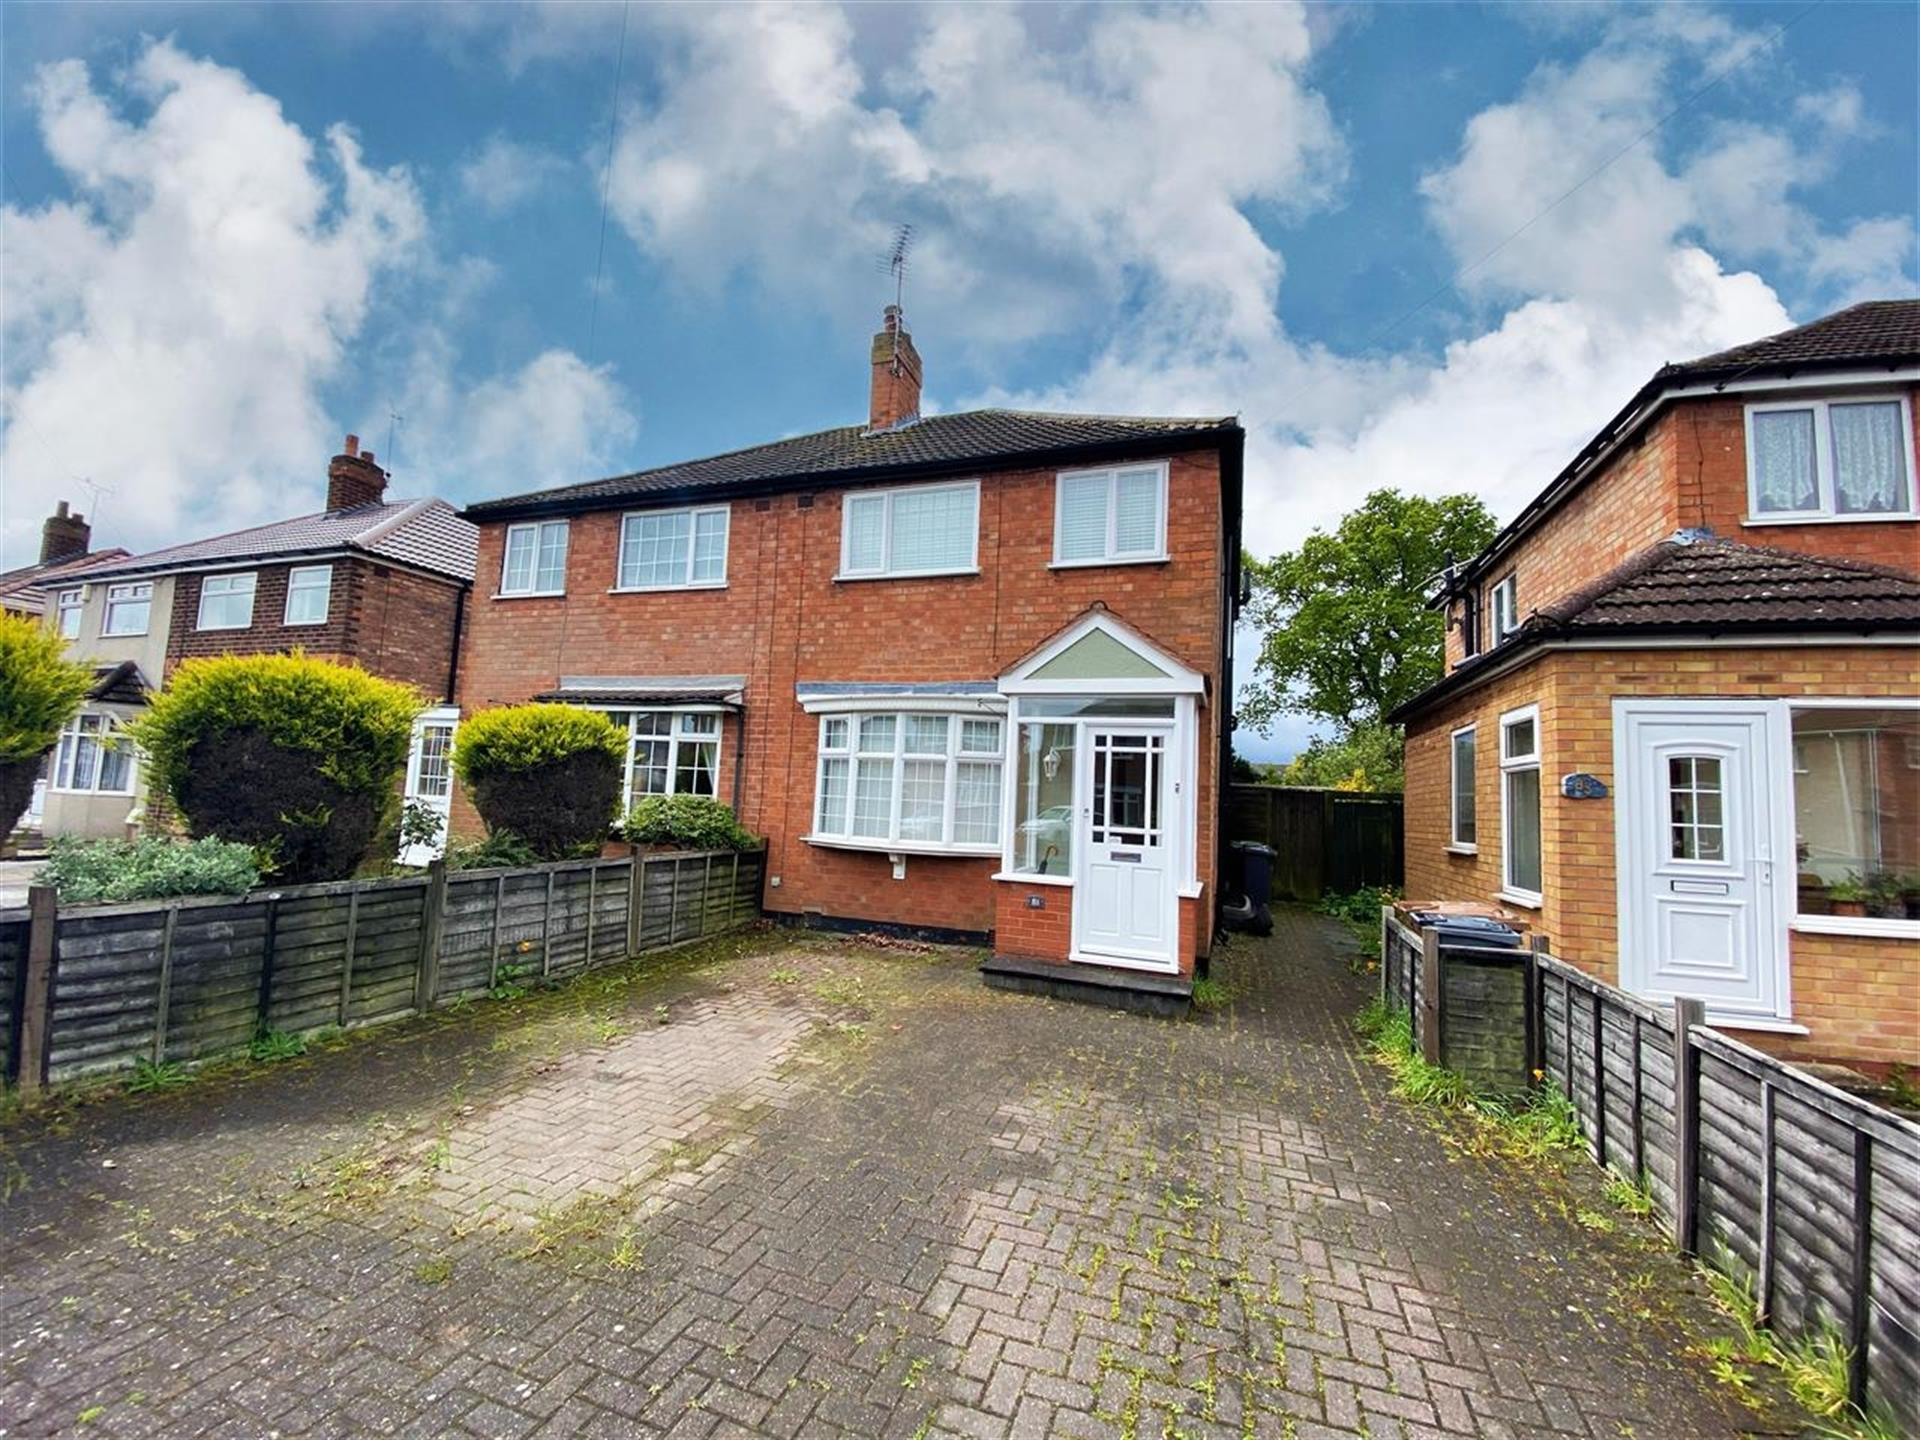 2 Bedroom Semi-detached House For Sale - Main Picture